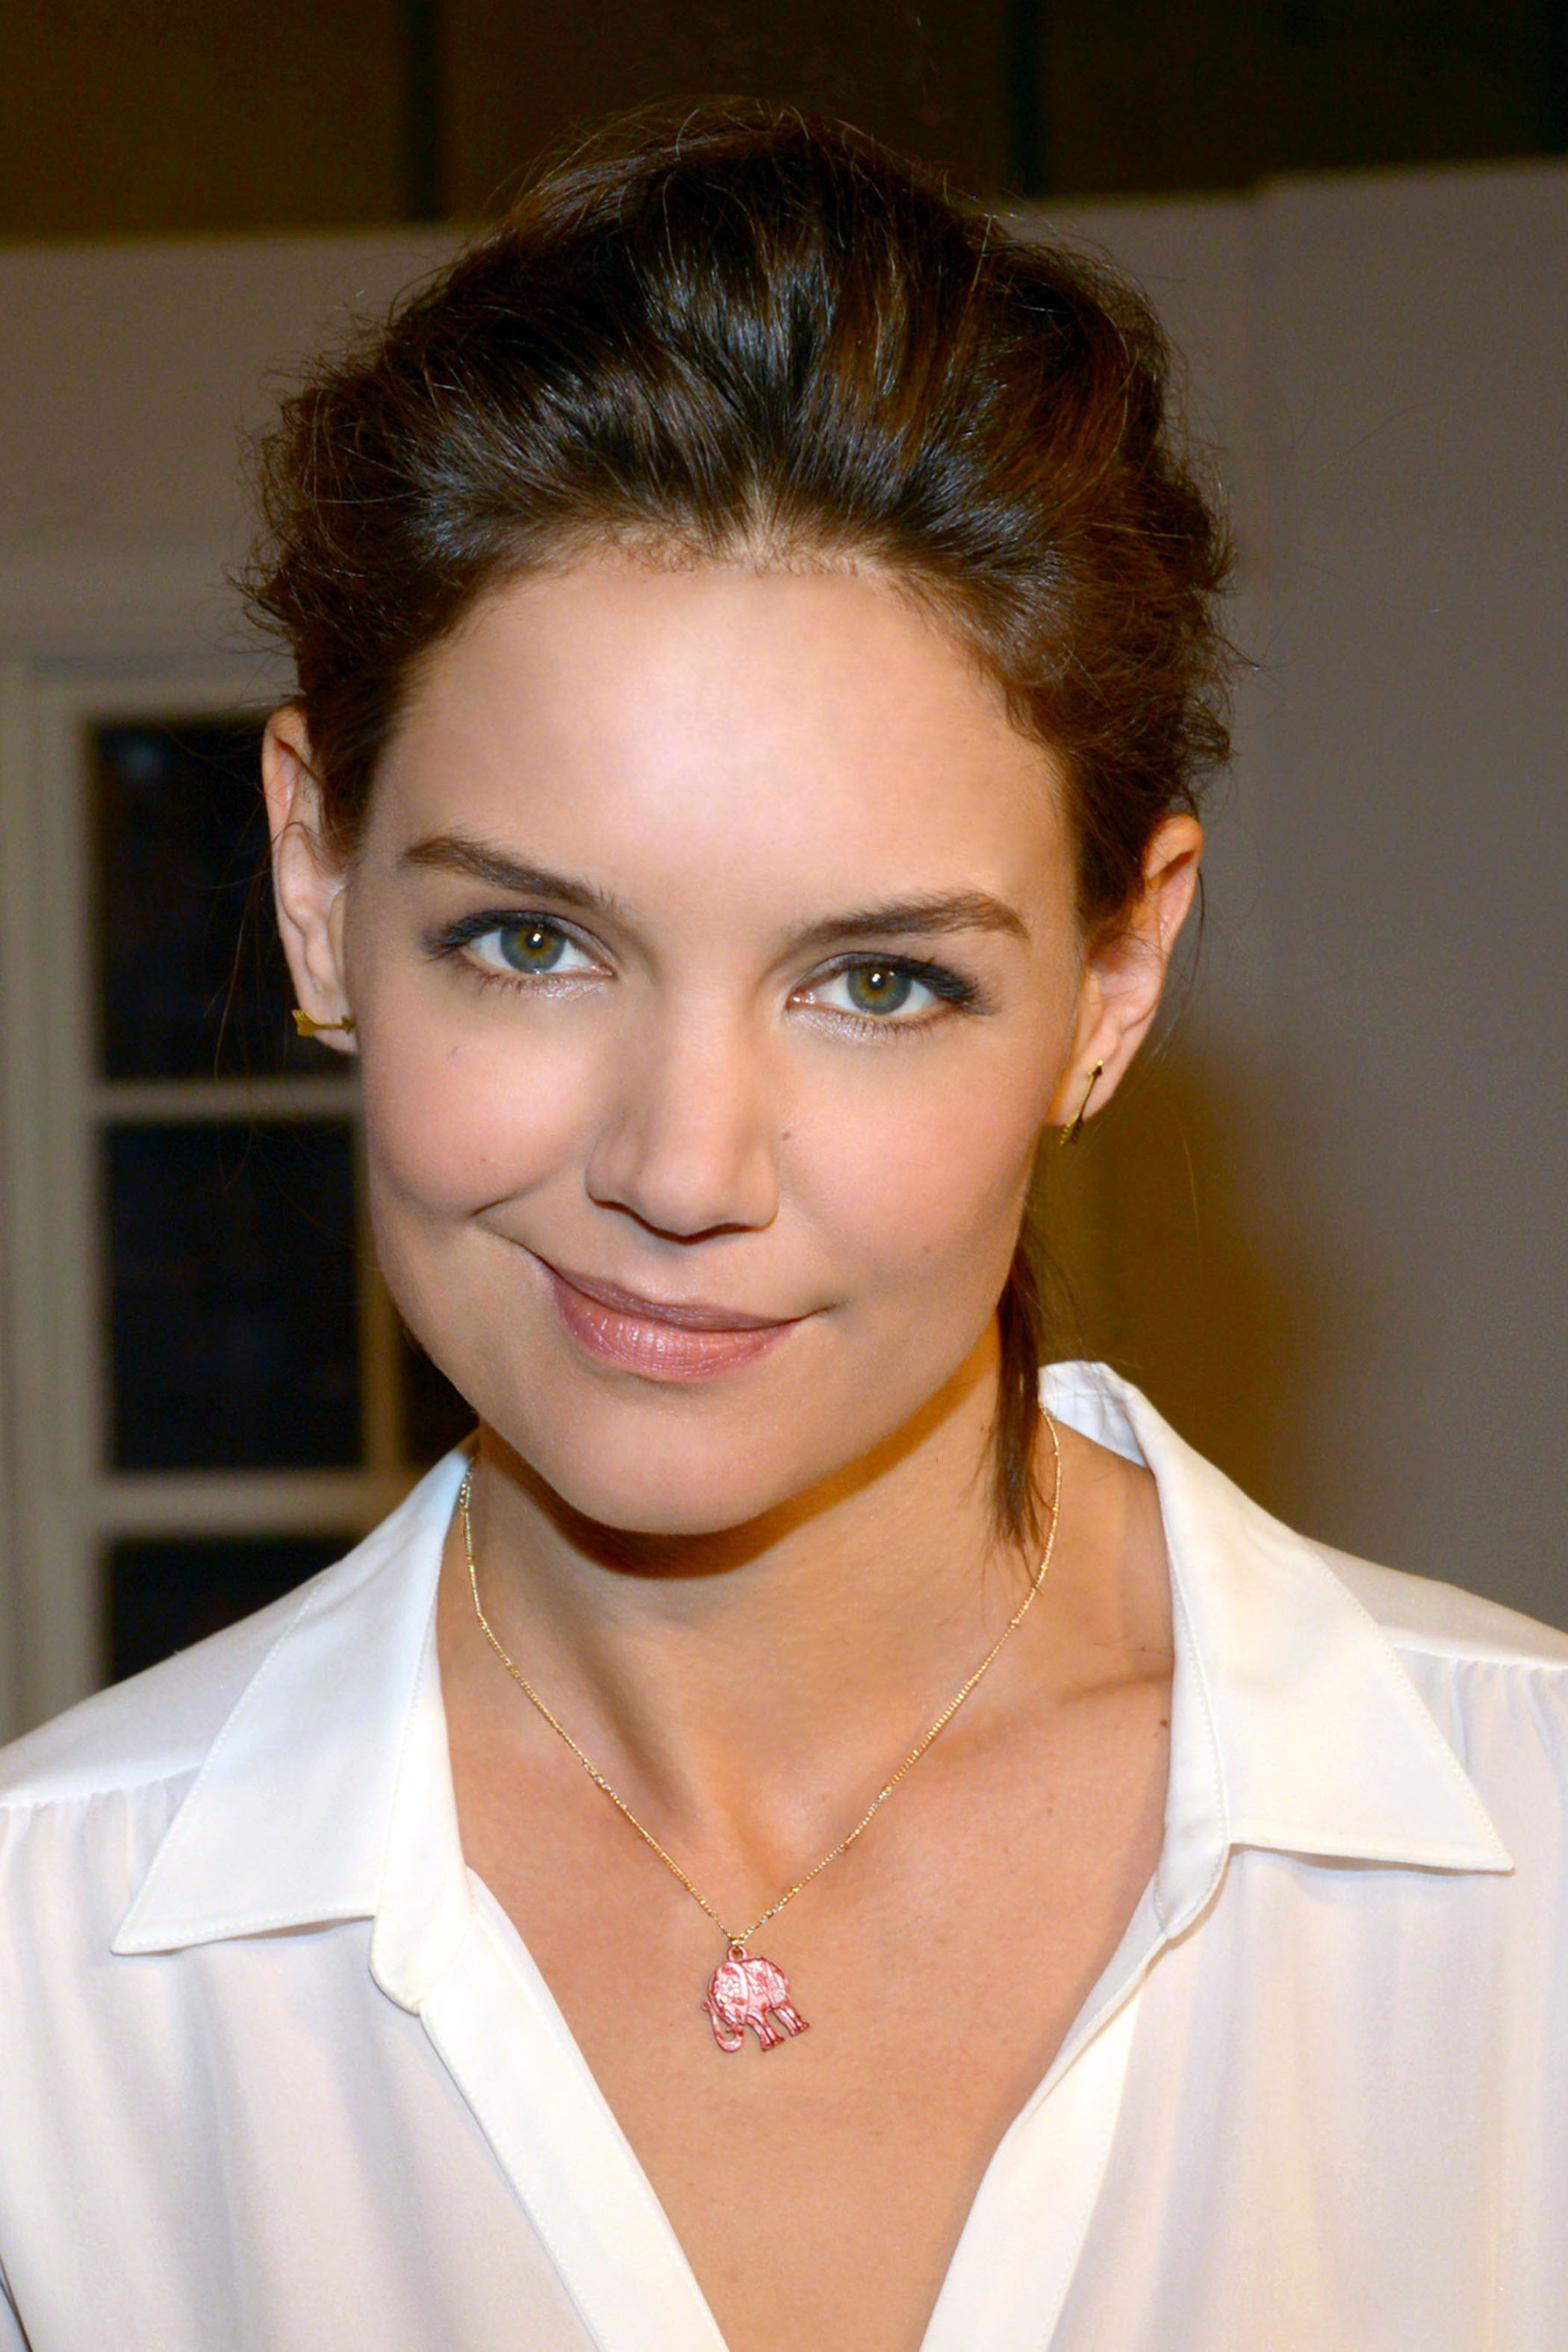 Katie Holmes Partners with Kohl's to Promote Their Pink Elephant Campaign to Support Breast Cancer Awareness